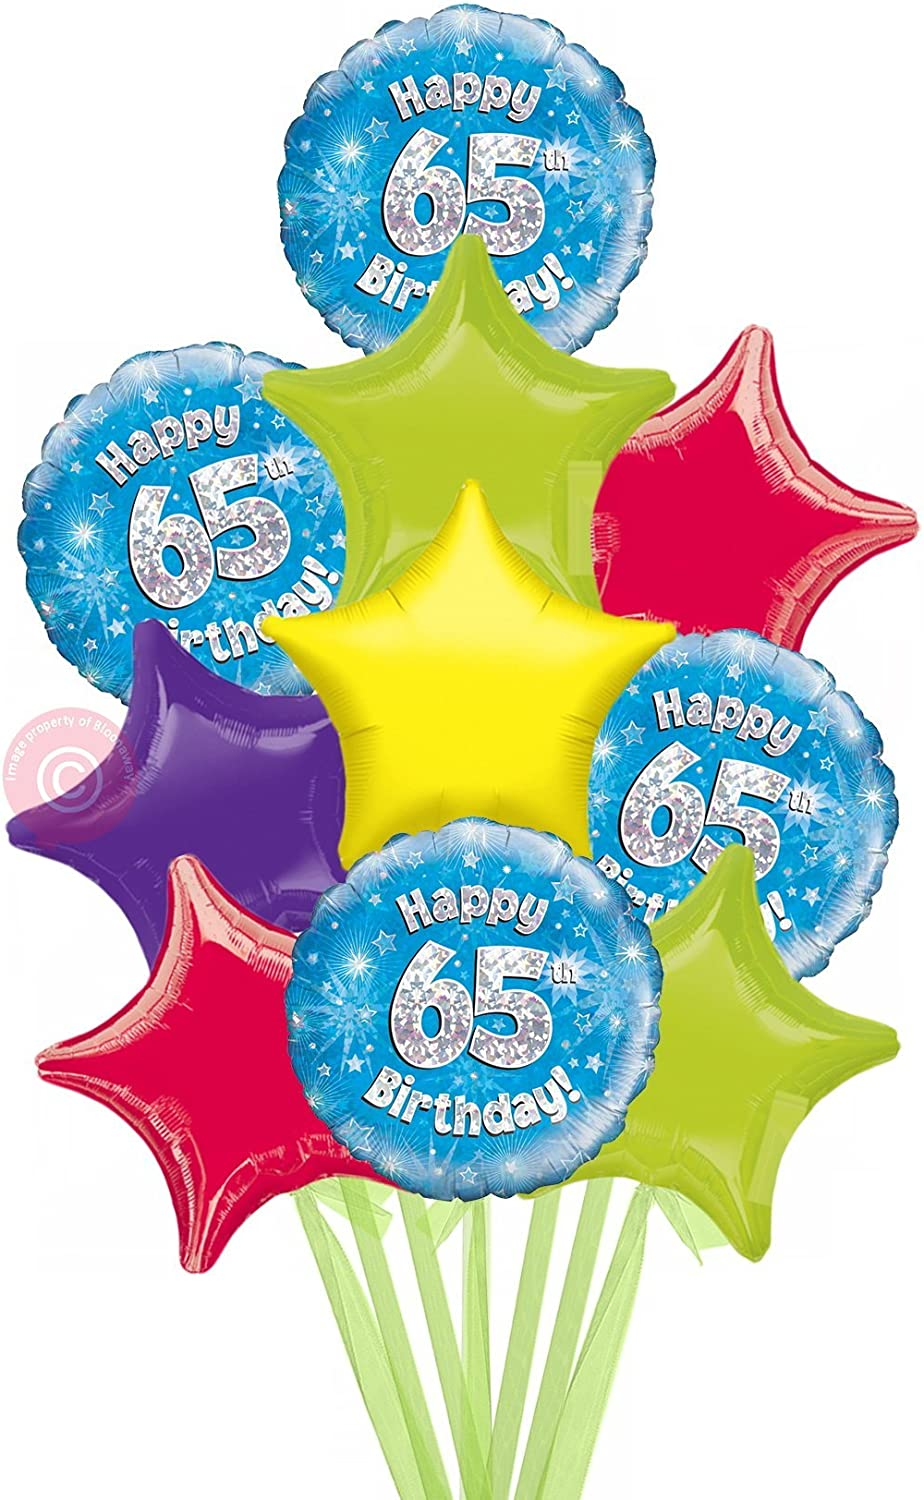 Num 65 Happy 65th Birthday bluee Holographic  Inflated Birthday Helium Balloon Delivered in a Box  Biggest Bouquet  10 Balloons  Bloonaway